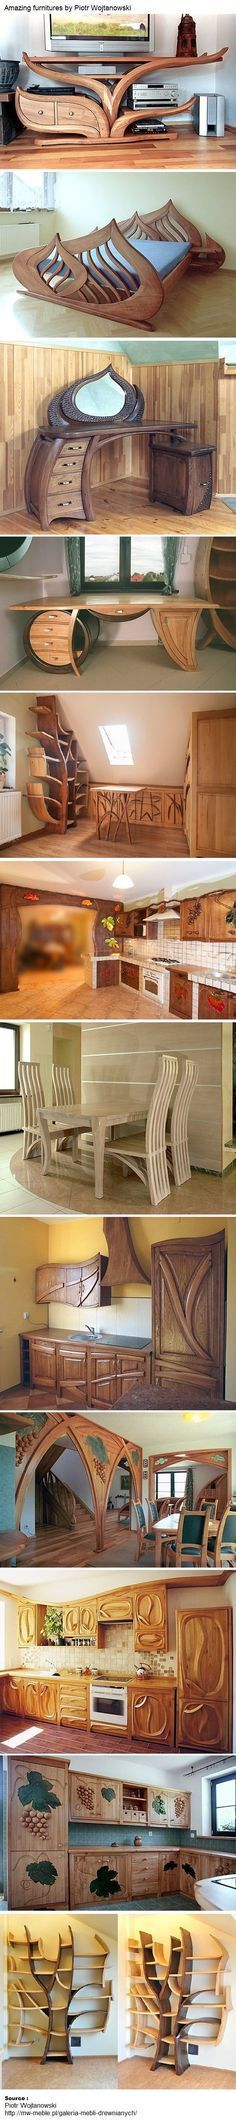 Amazing furnitures by Piotr Wojtanowski. That desk with the round barrel and the…